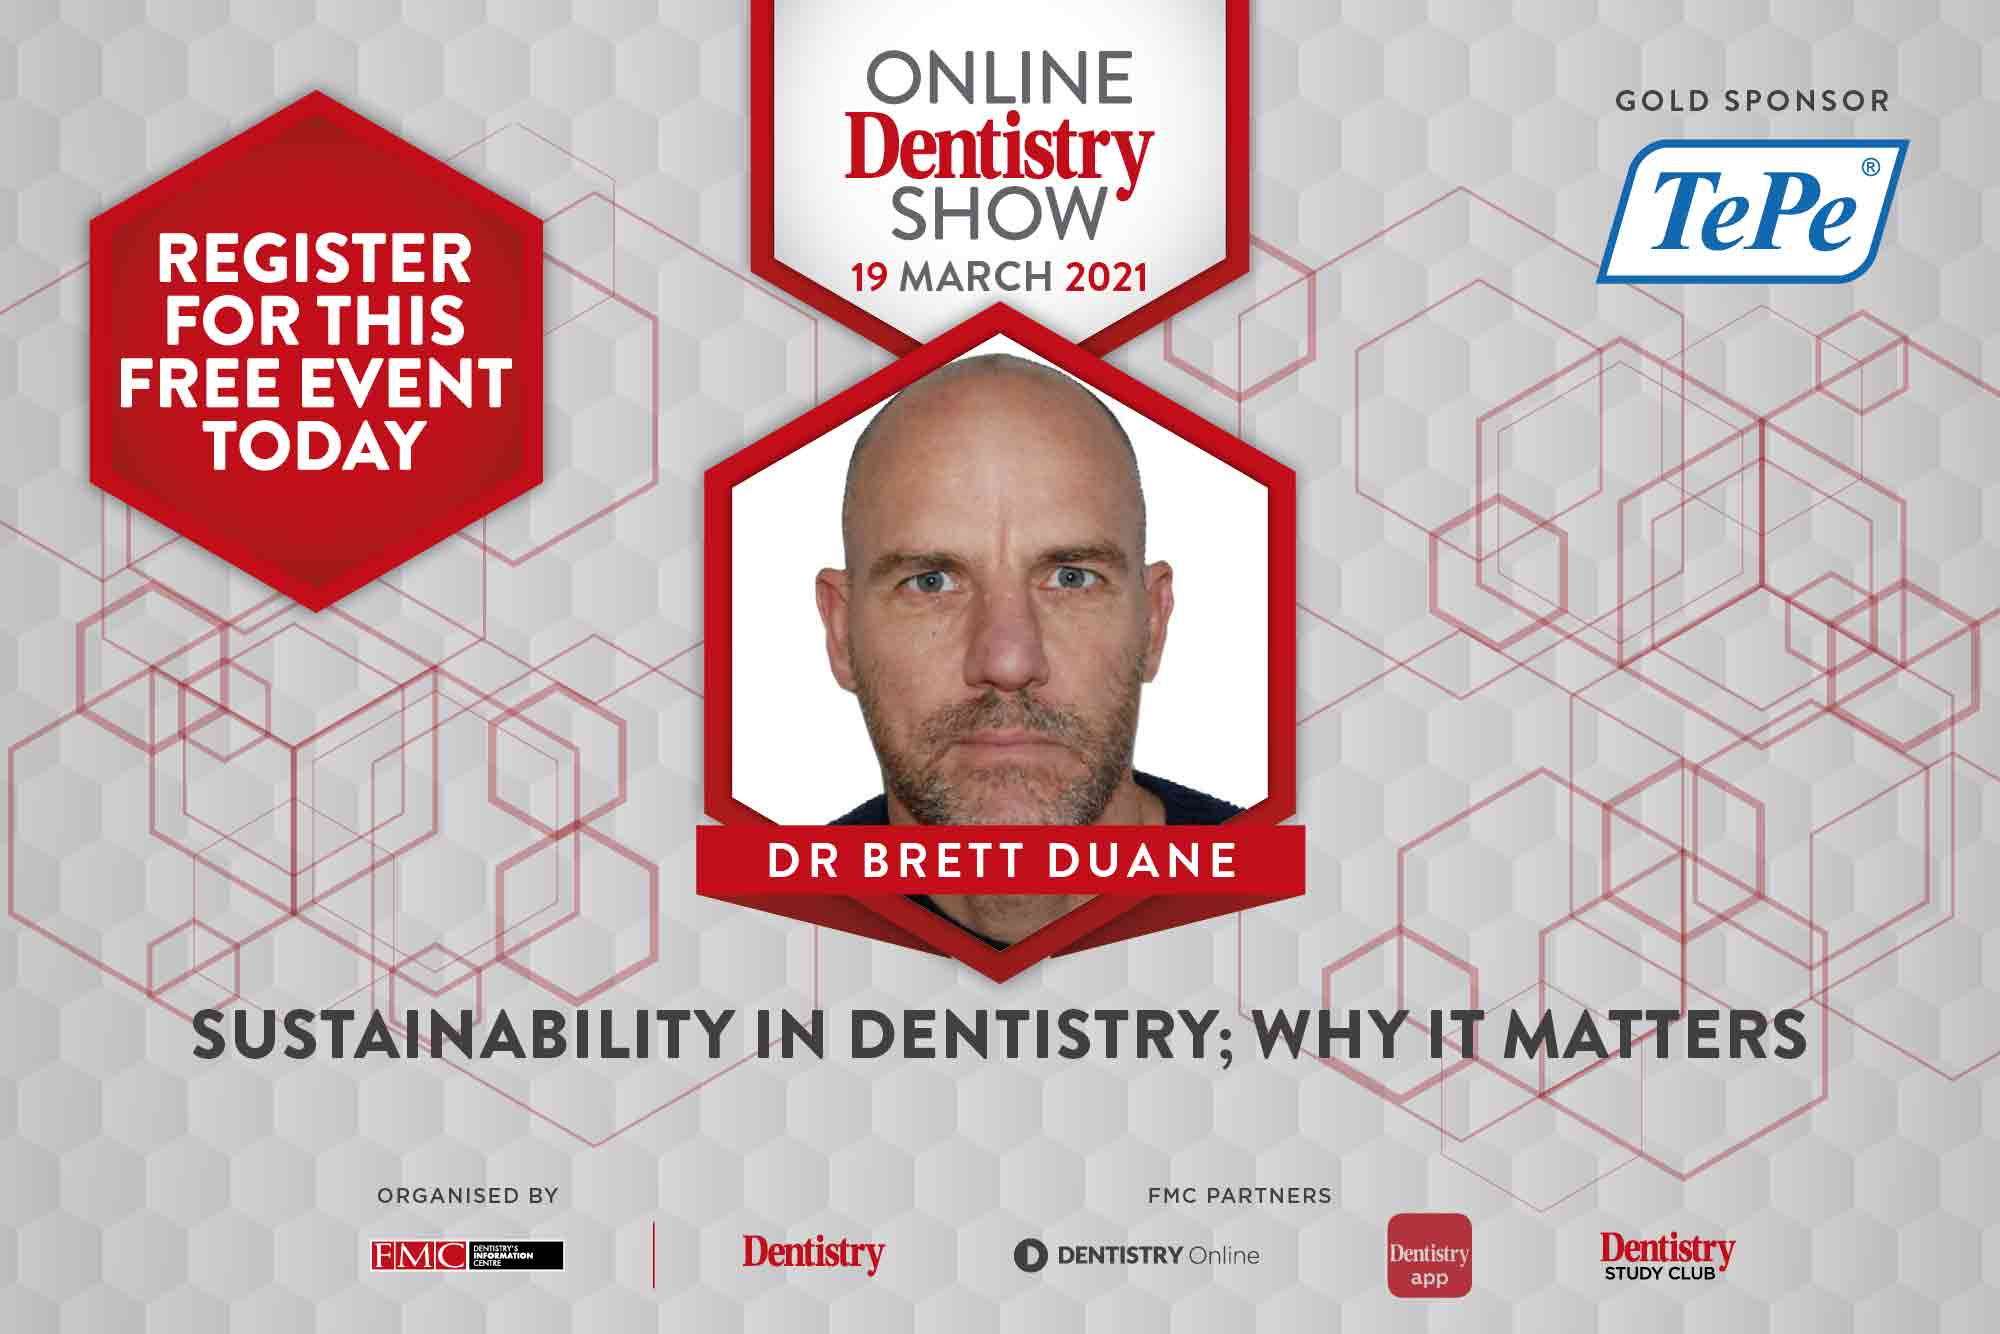 Online Dentistry Show – sustainability in dentistry and why it matters